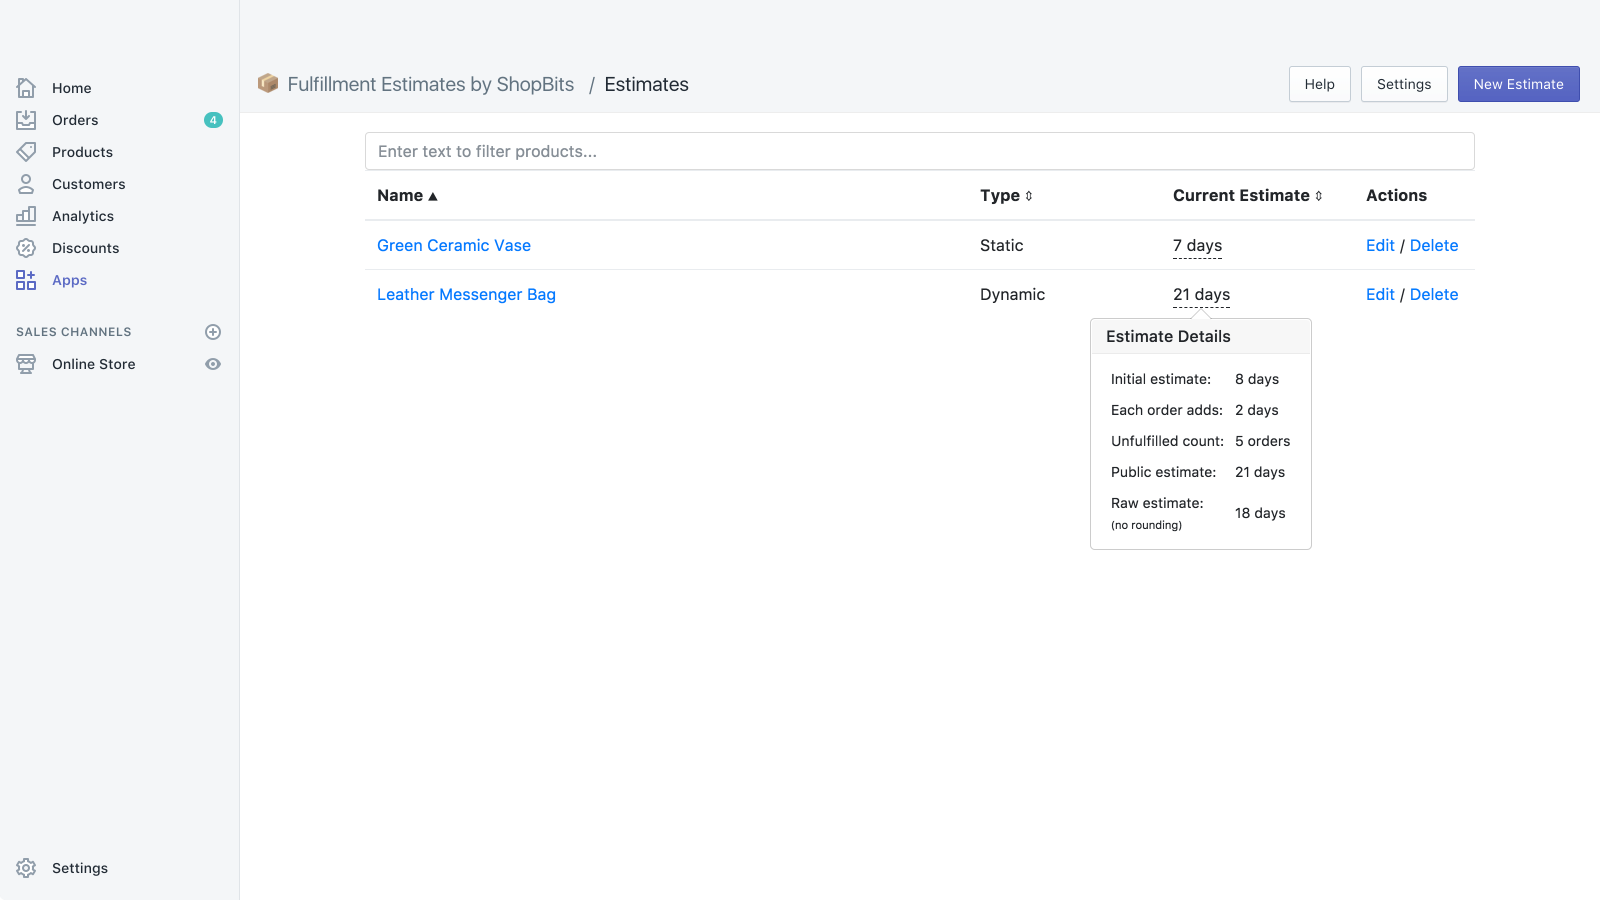 Easily create new estimates using our intuitive editor